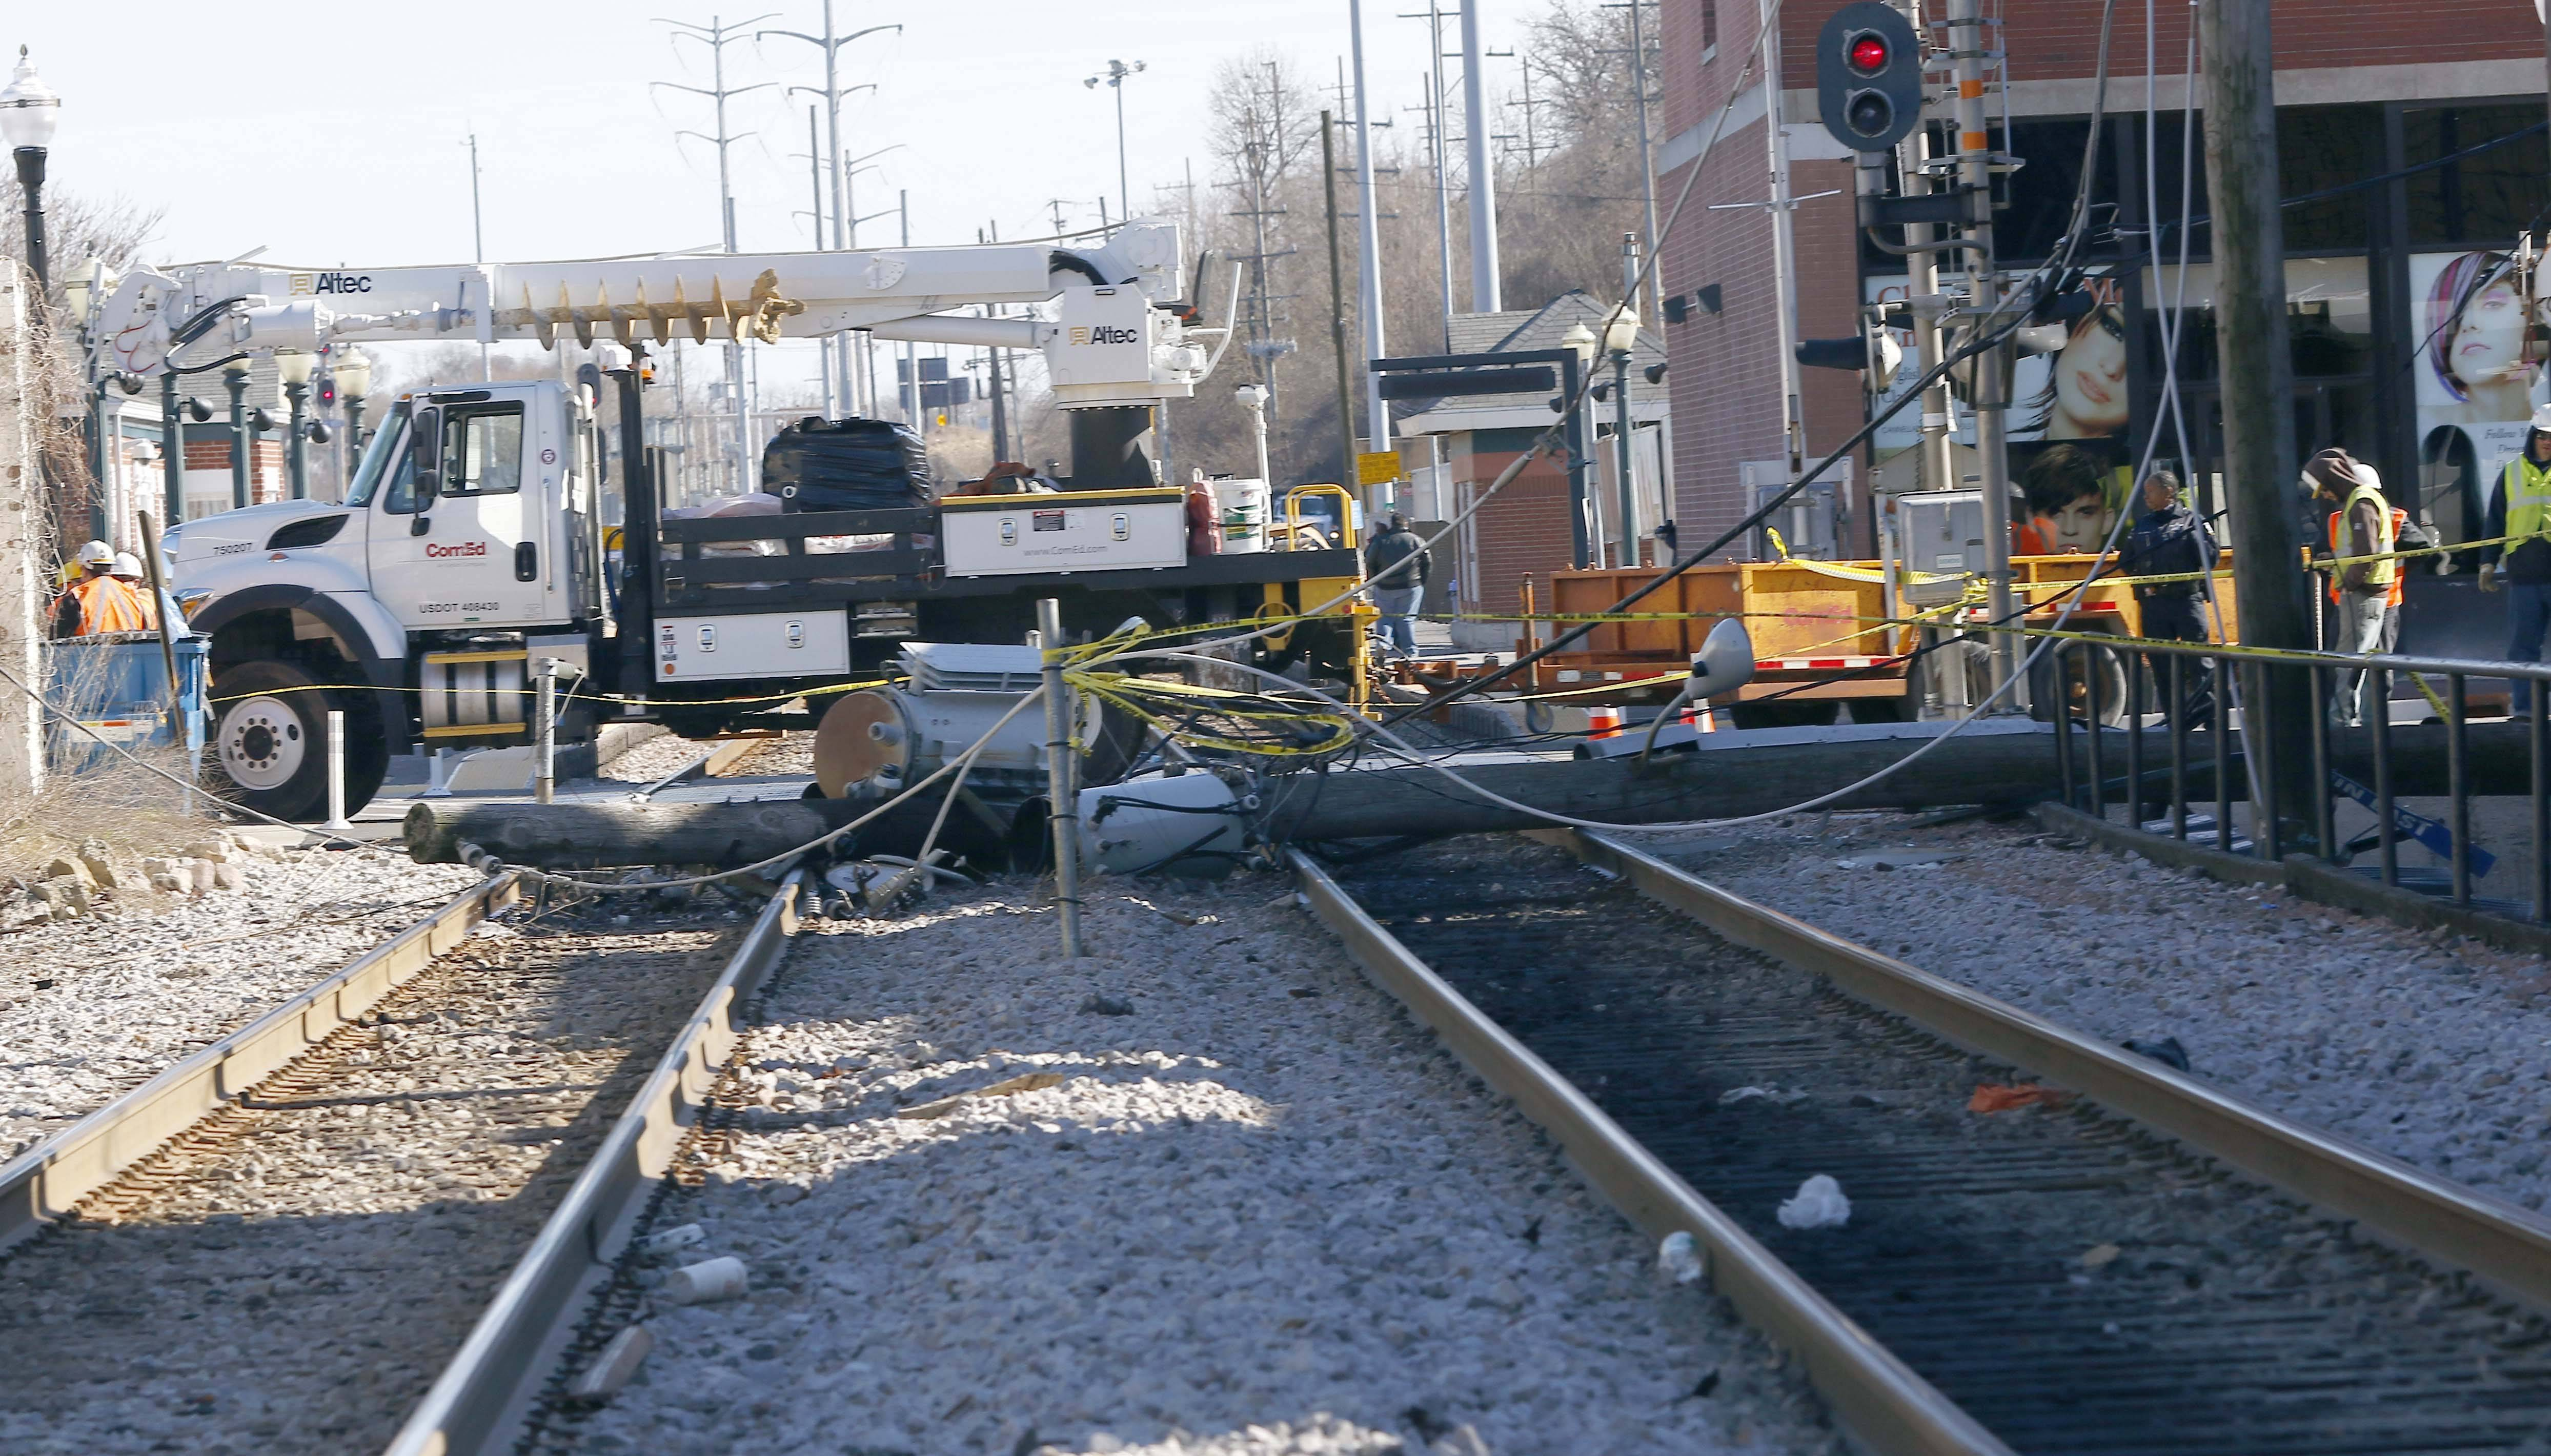 ComEd crews were at the scene of a downed power line on the Metra railroad tracks near the Elgin train station Wednesday.